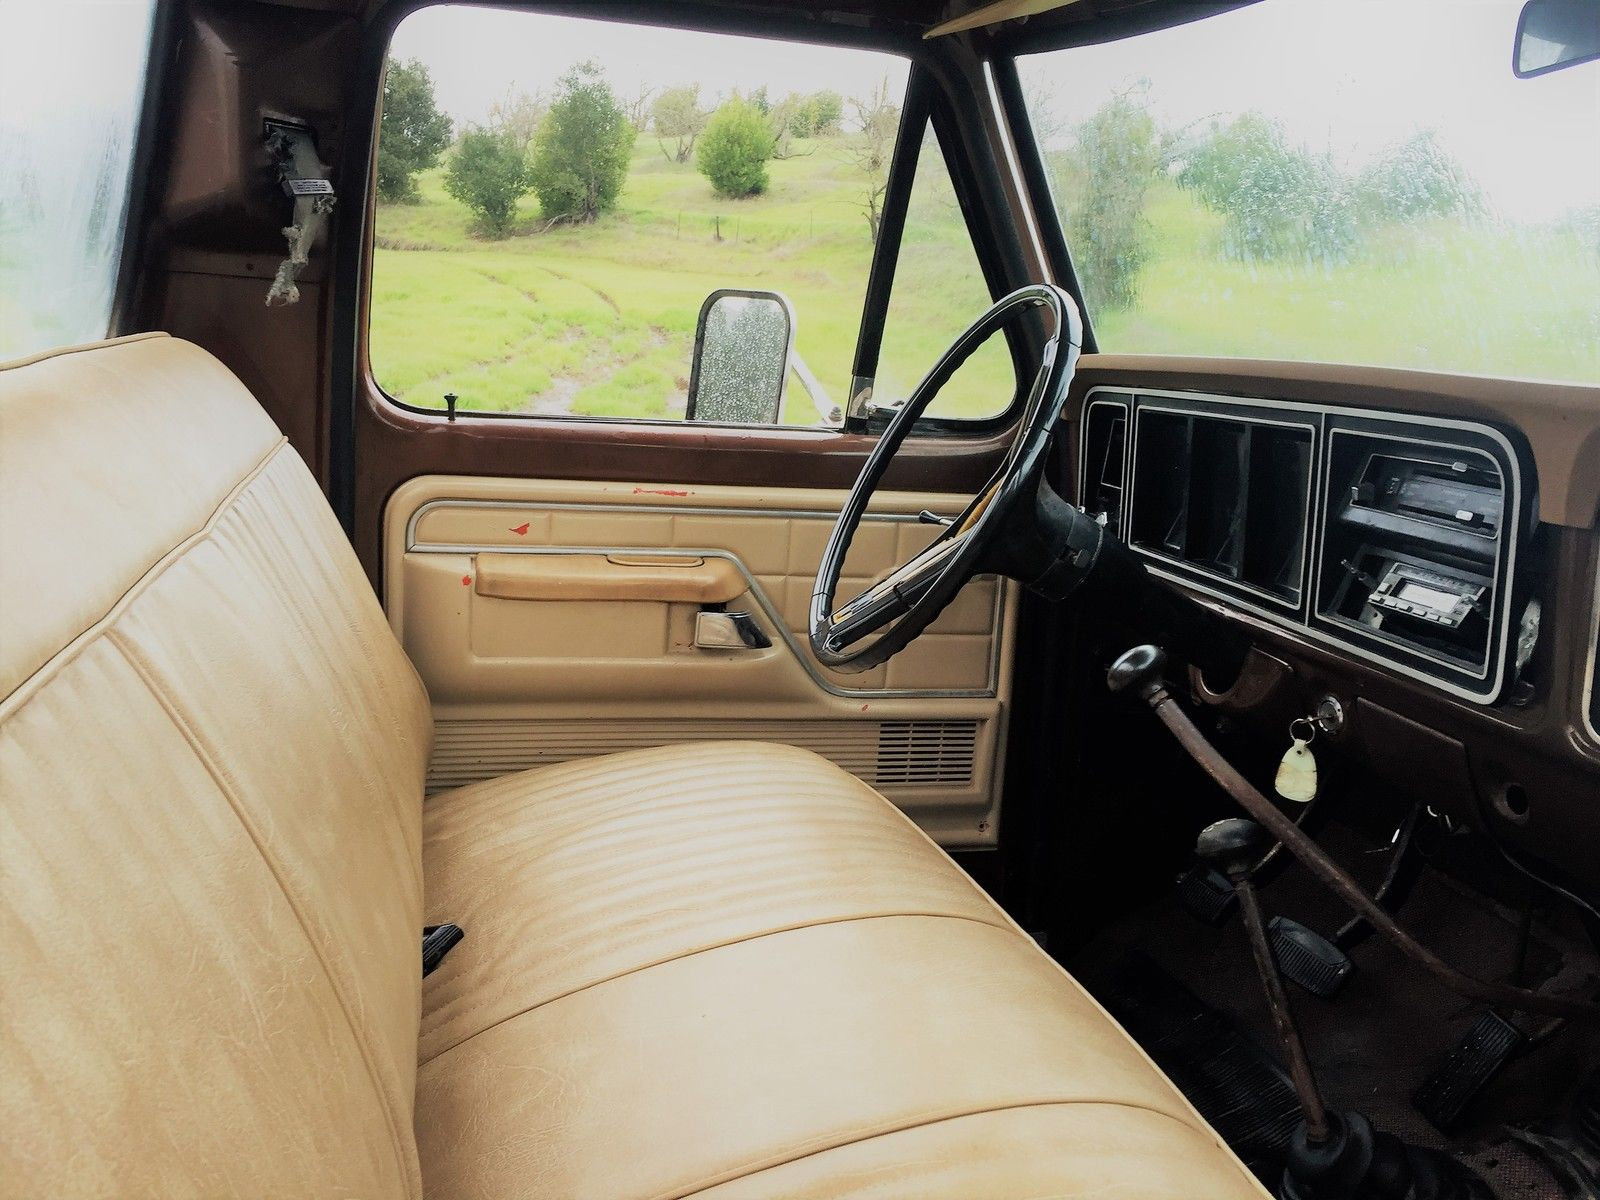 Daily Turismo What Can Brown Do 1976 Ford F 250 Highboy Ranger 1964 4x4 On The Other End Of That Ski Pole Sized Shifter Is A 4 Speed Manual Gearbox Hooked Up To 360 Cubic Inch Fe V8 Power Heads Dana 44 Axles Front And